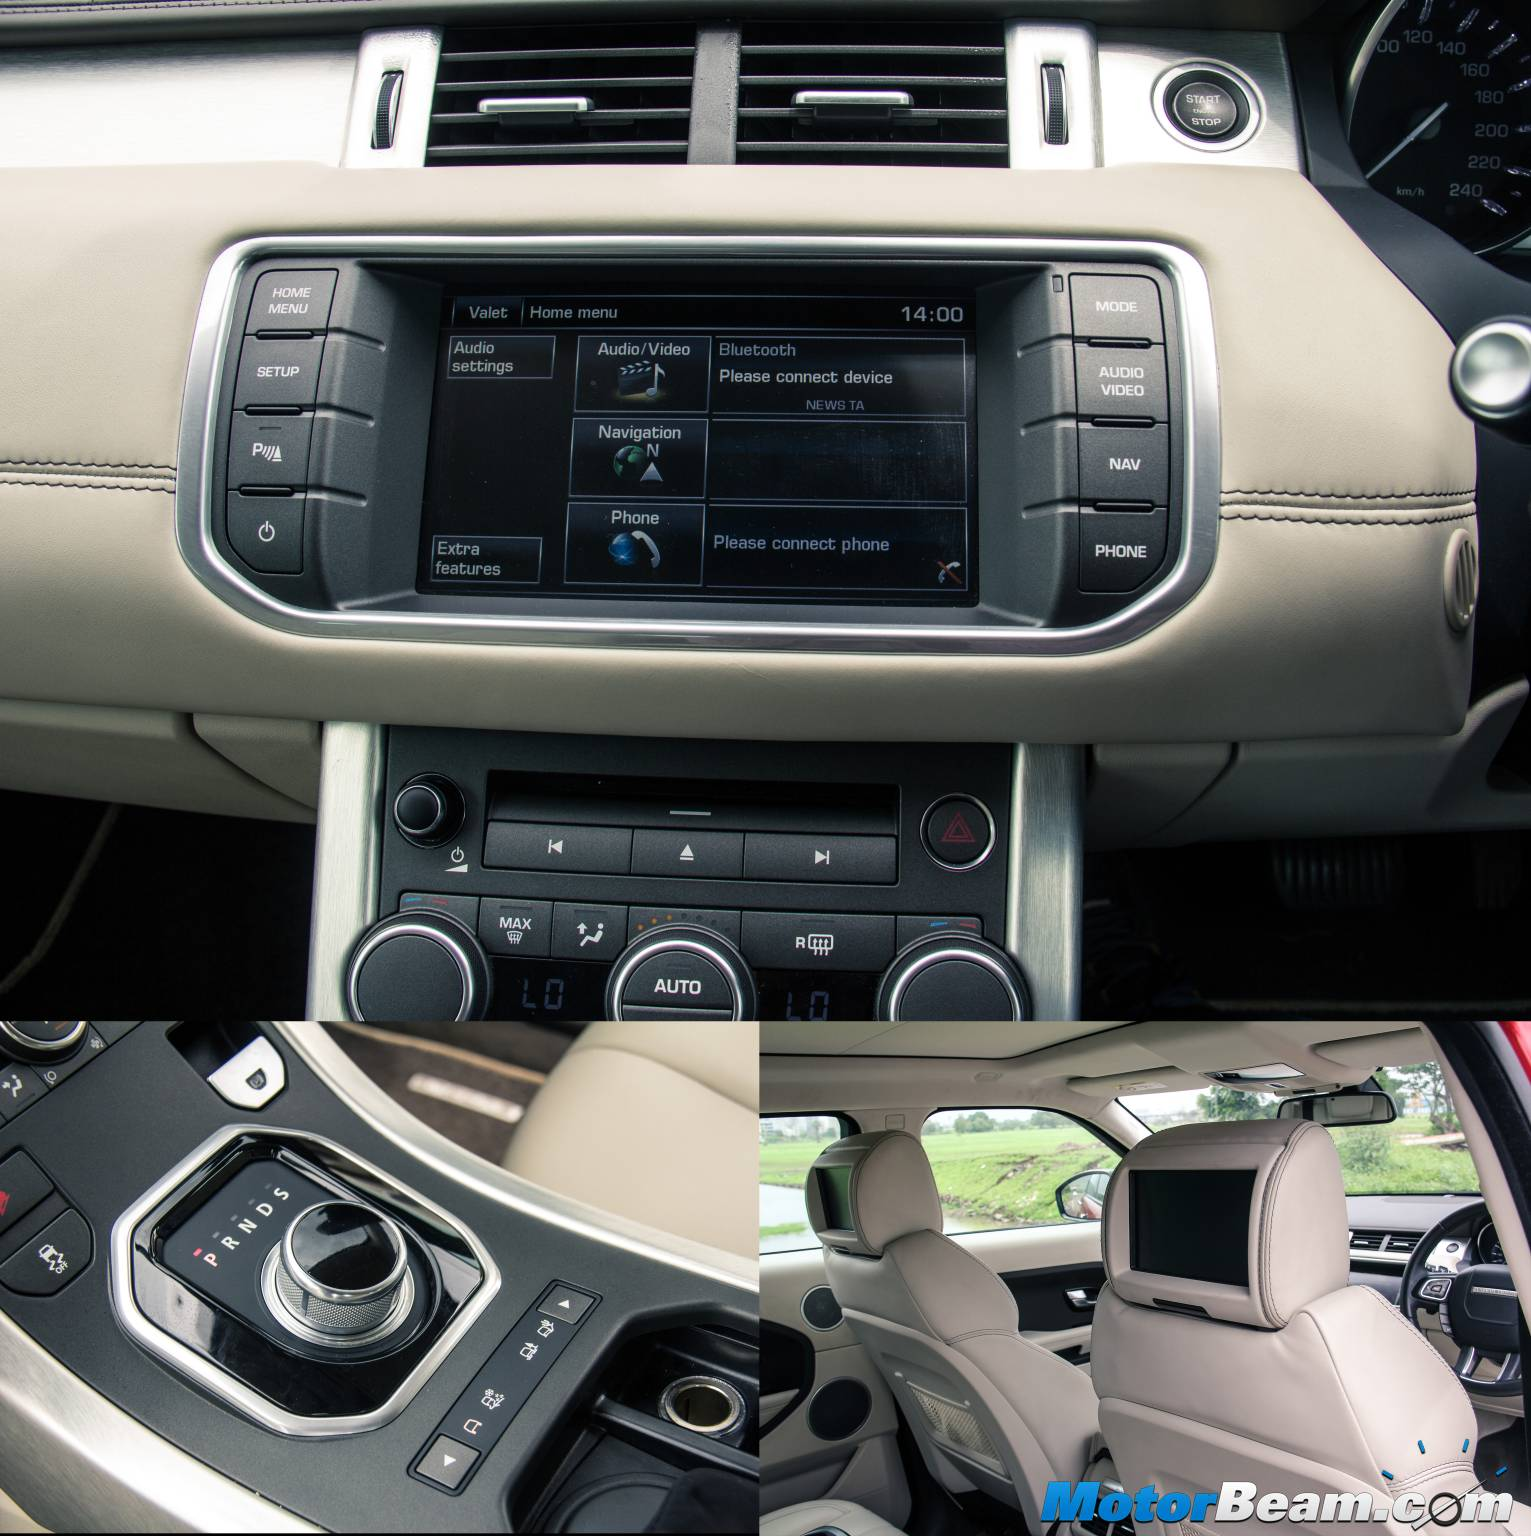 2015 Range Rover Evoque 9-Speed Test Drive Review